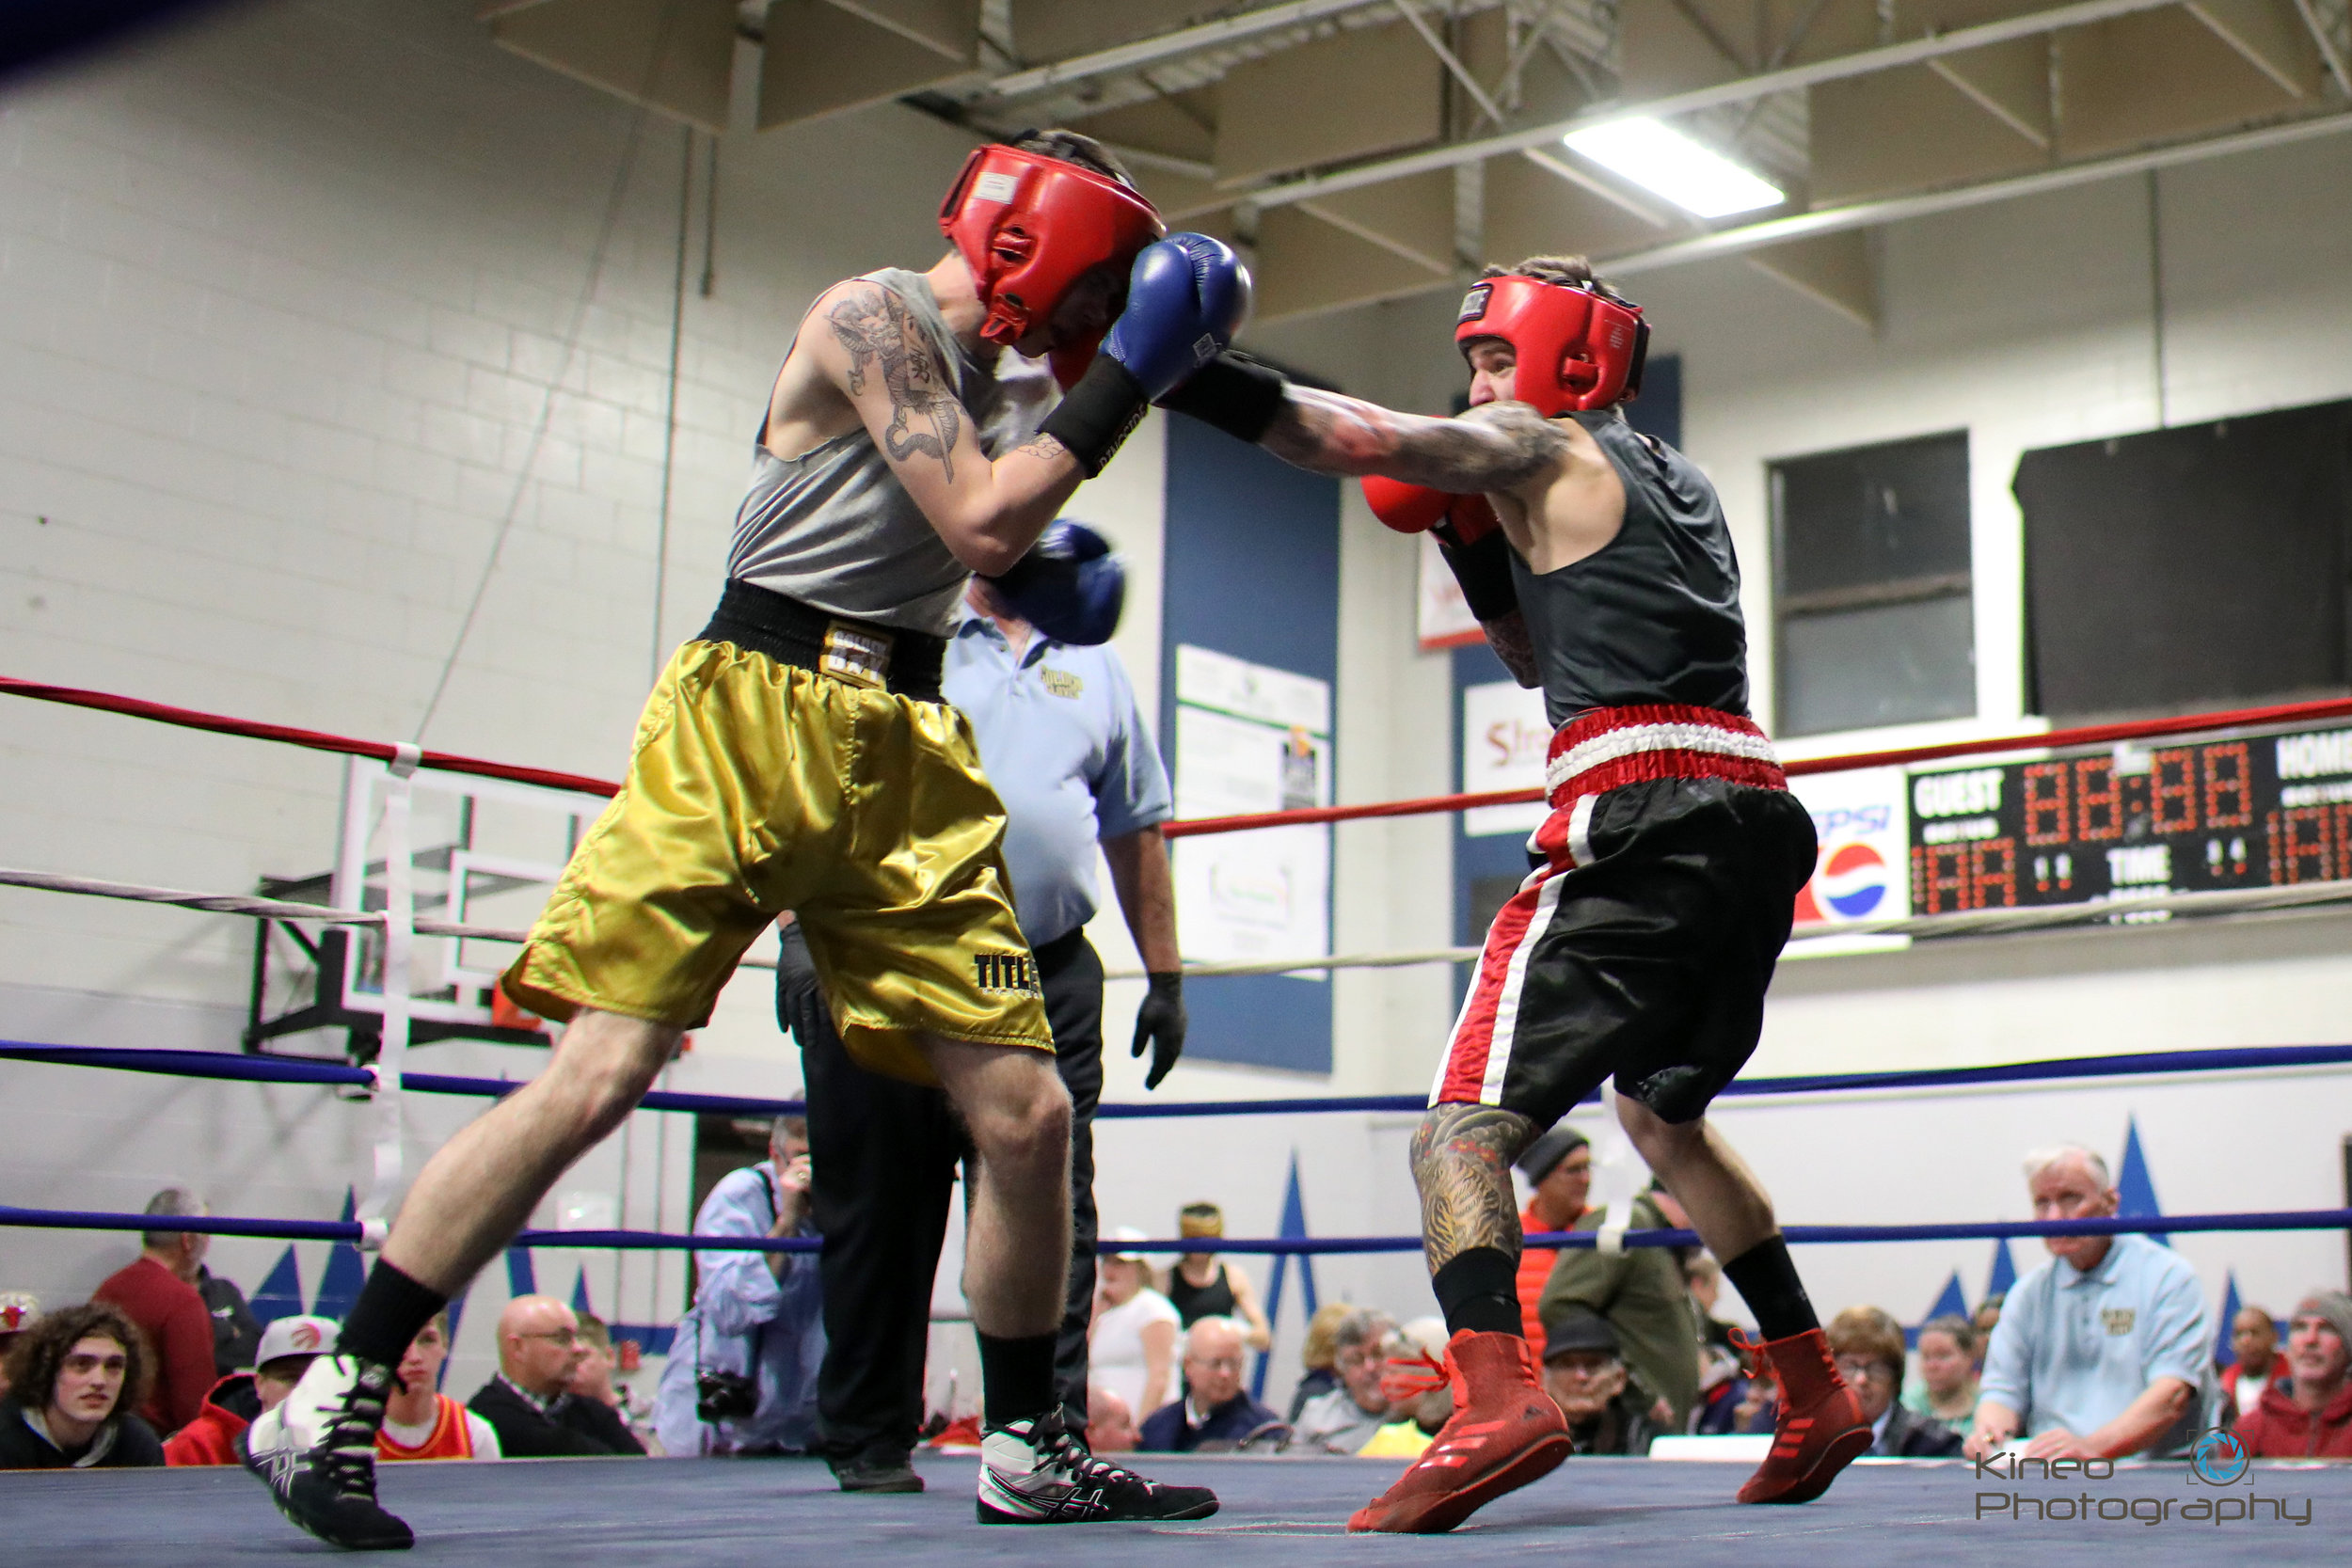 Portland Boxing Club's light welterweight (141 lbs) Nate Nappi (right) lands a jab to Derek Carlbers at the Northern New England Golden Gloves Finals on January 26, 2019. Photo courtesy Kineo Photography.